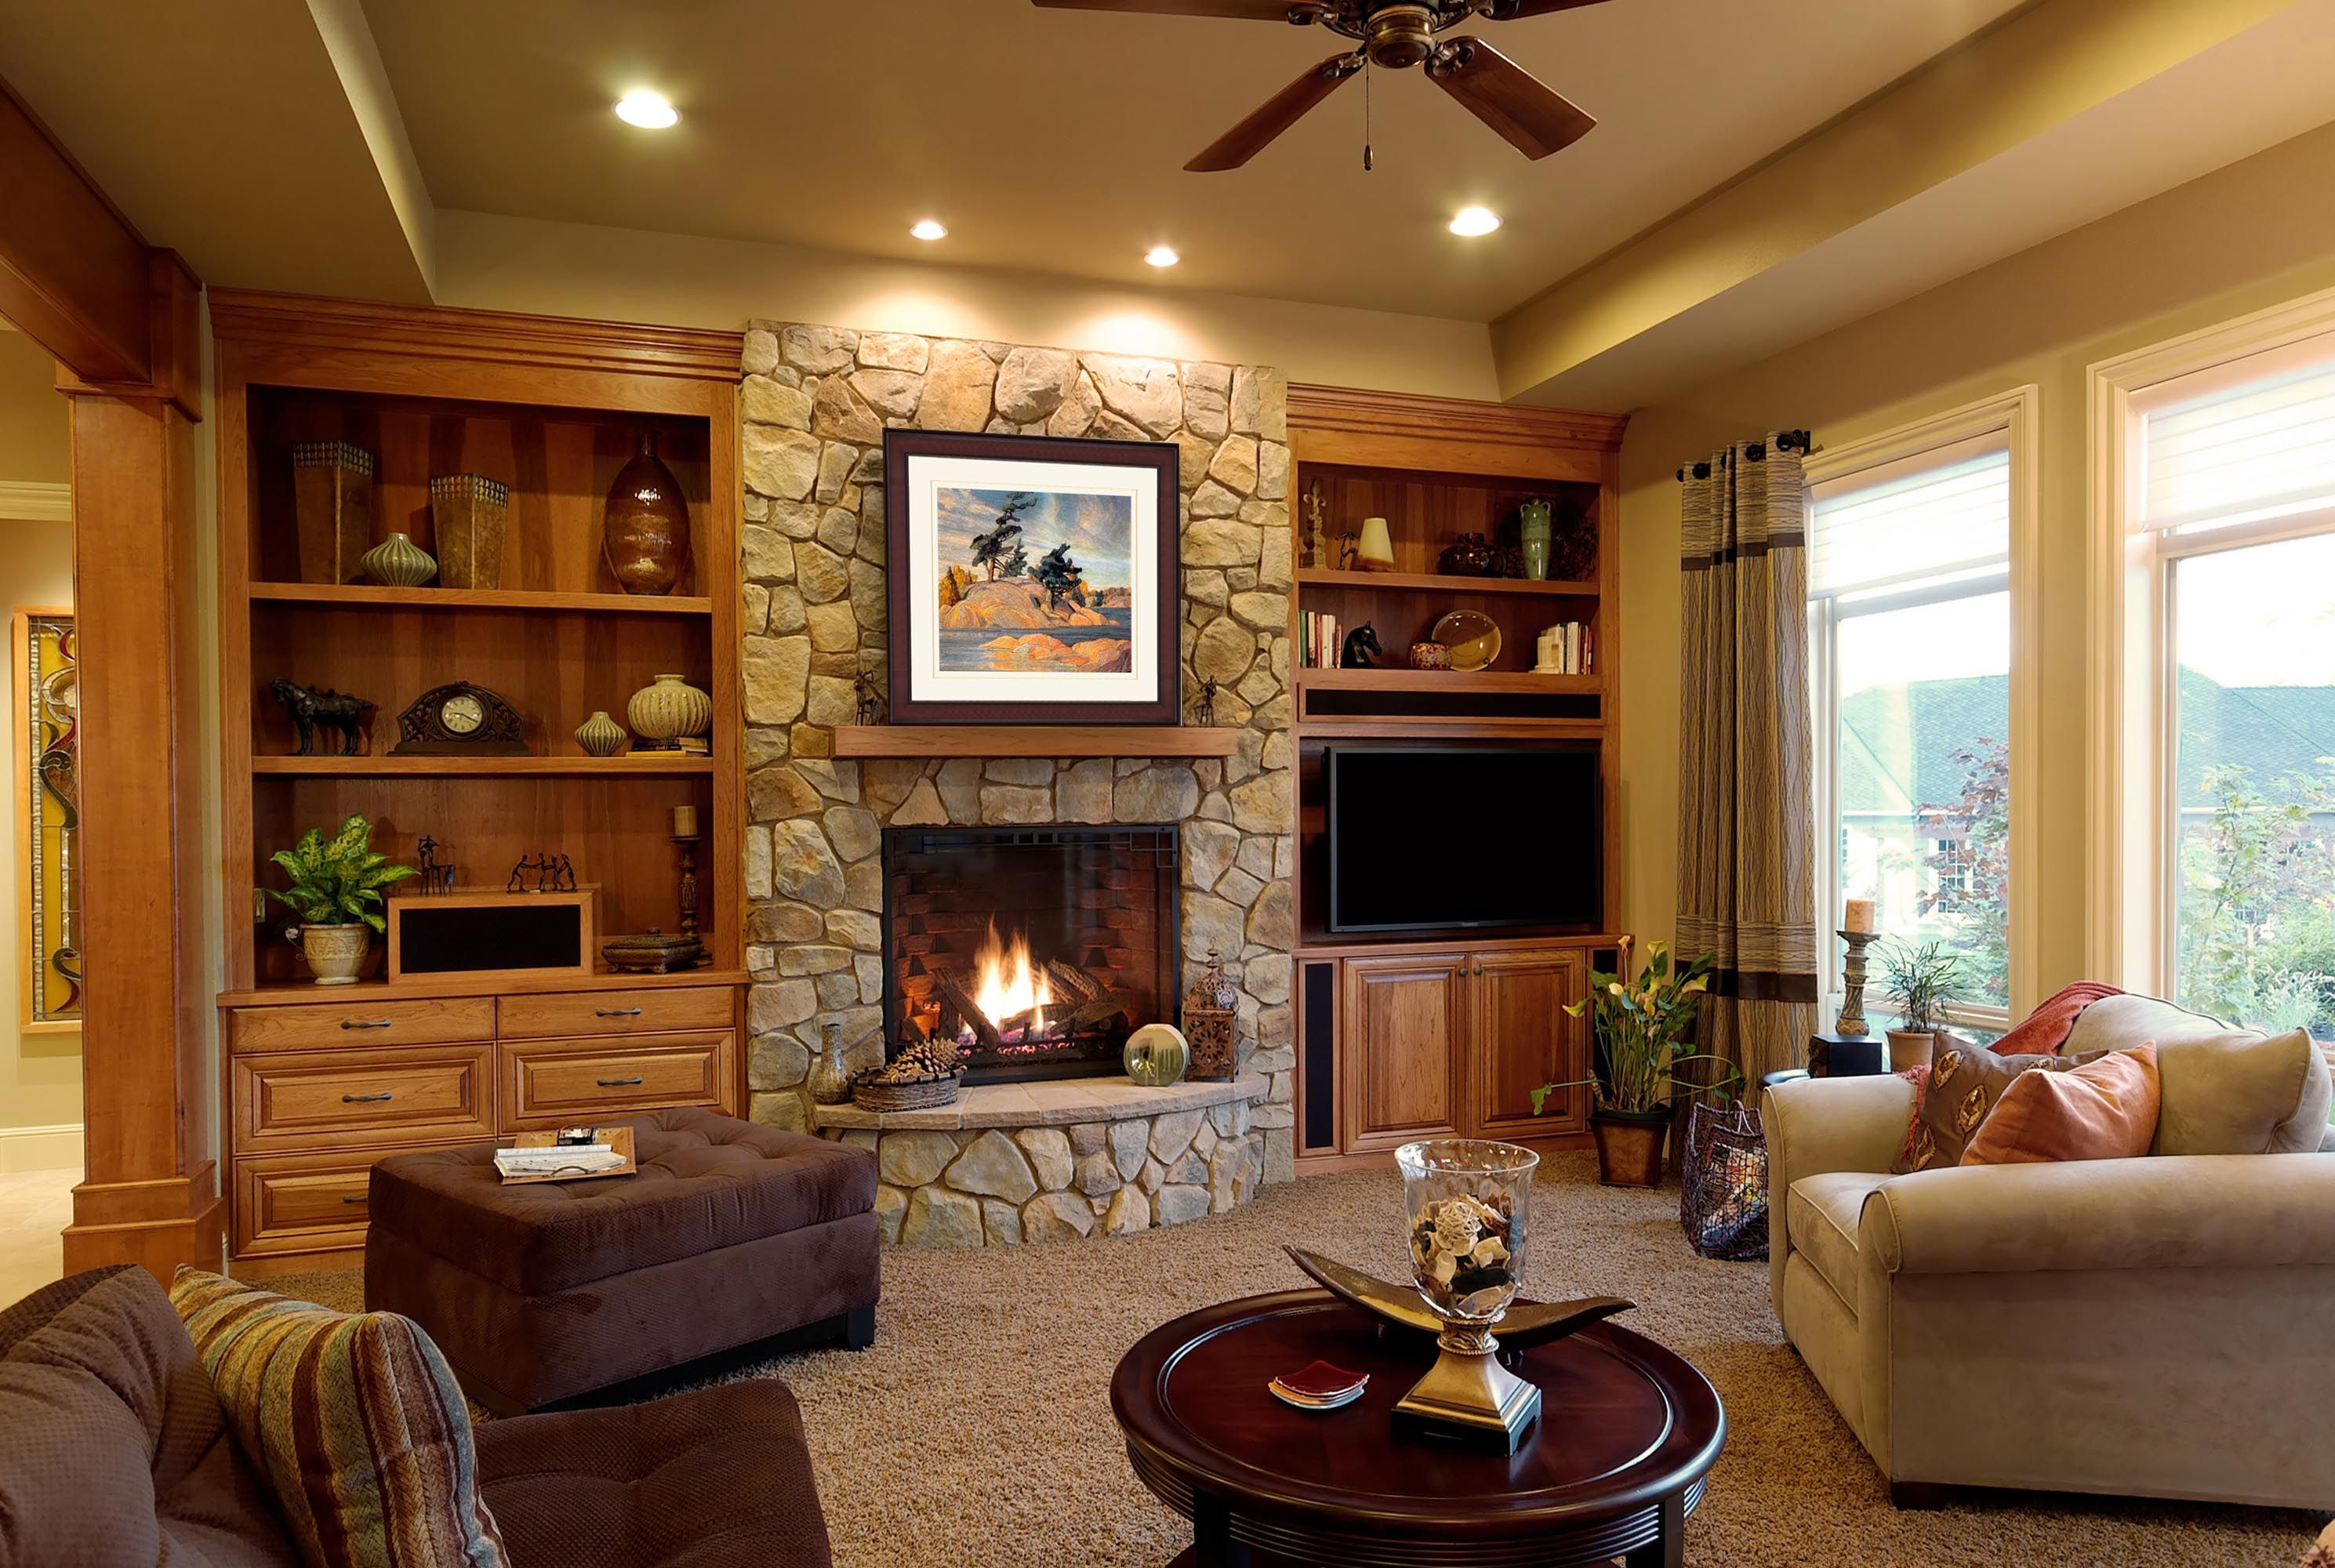 43++ Cozy living room ideas with fireplace information